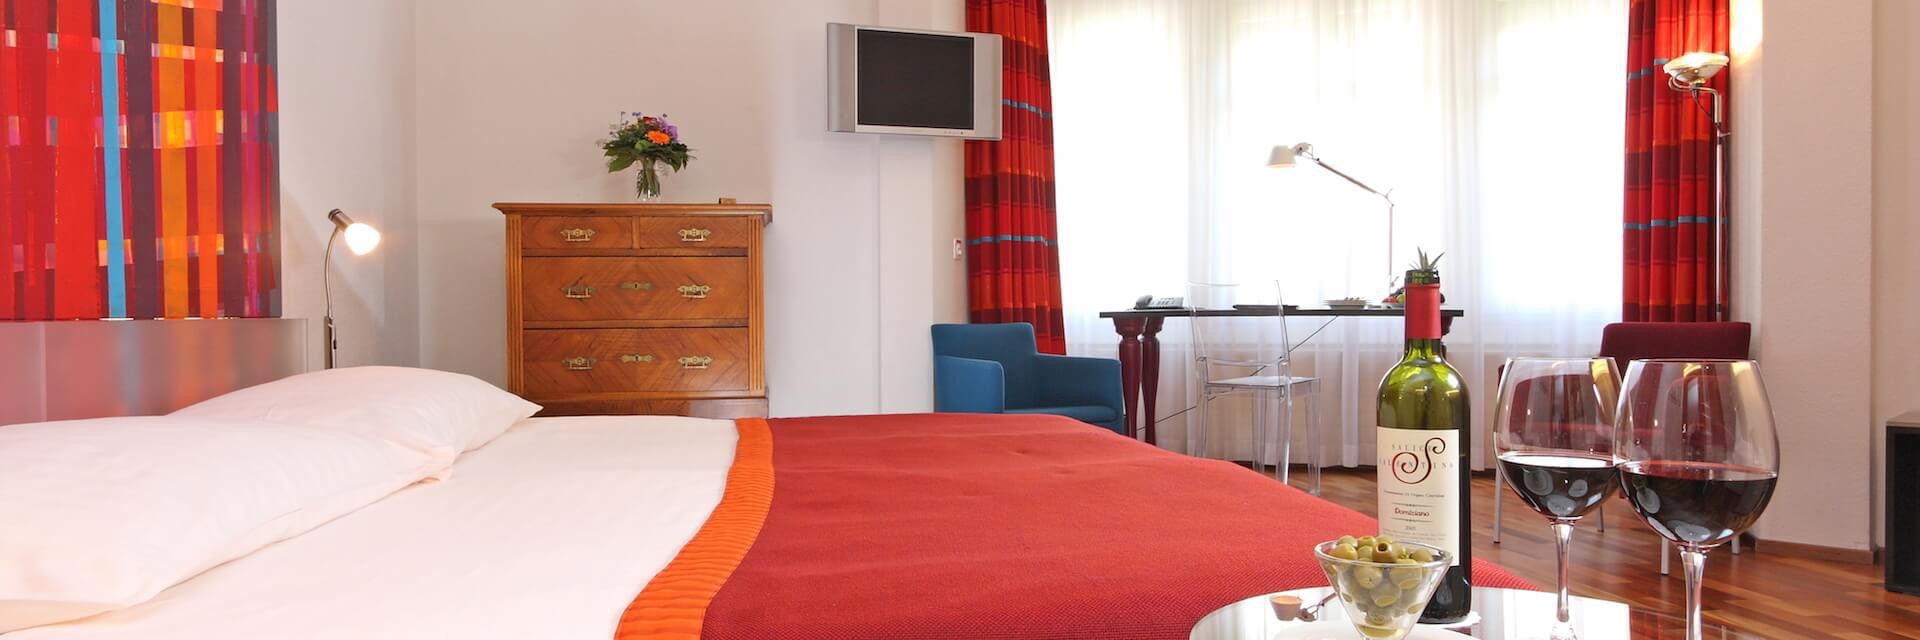 Delightful Rooms And Suites At Hotel Waldstätterhof Lucerne.